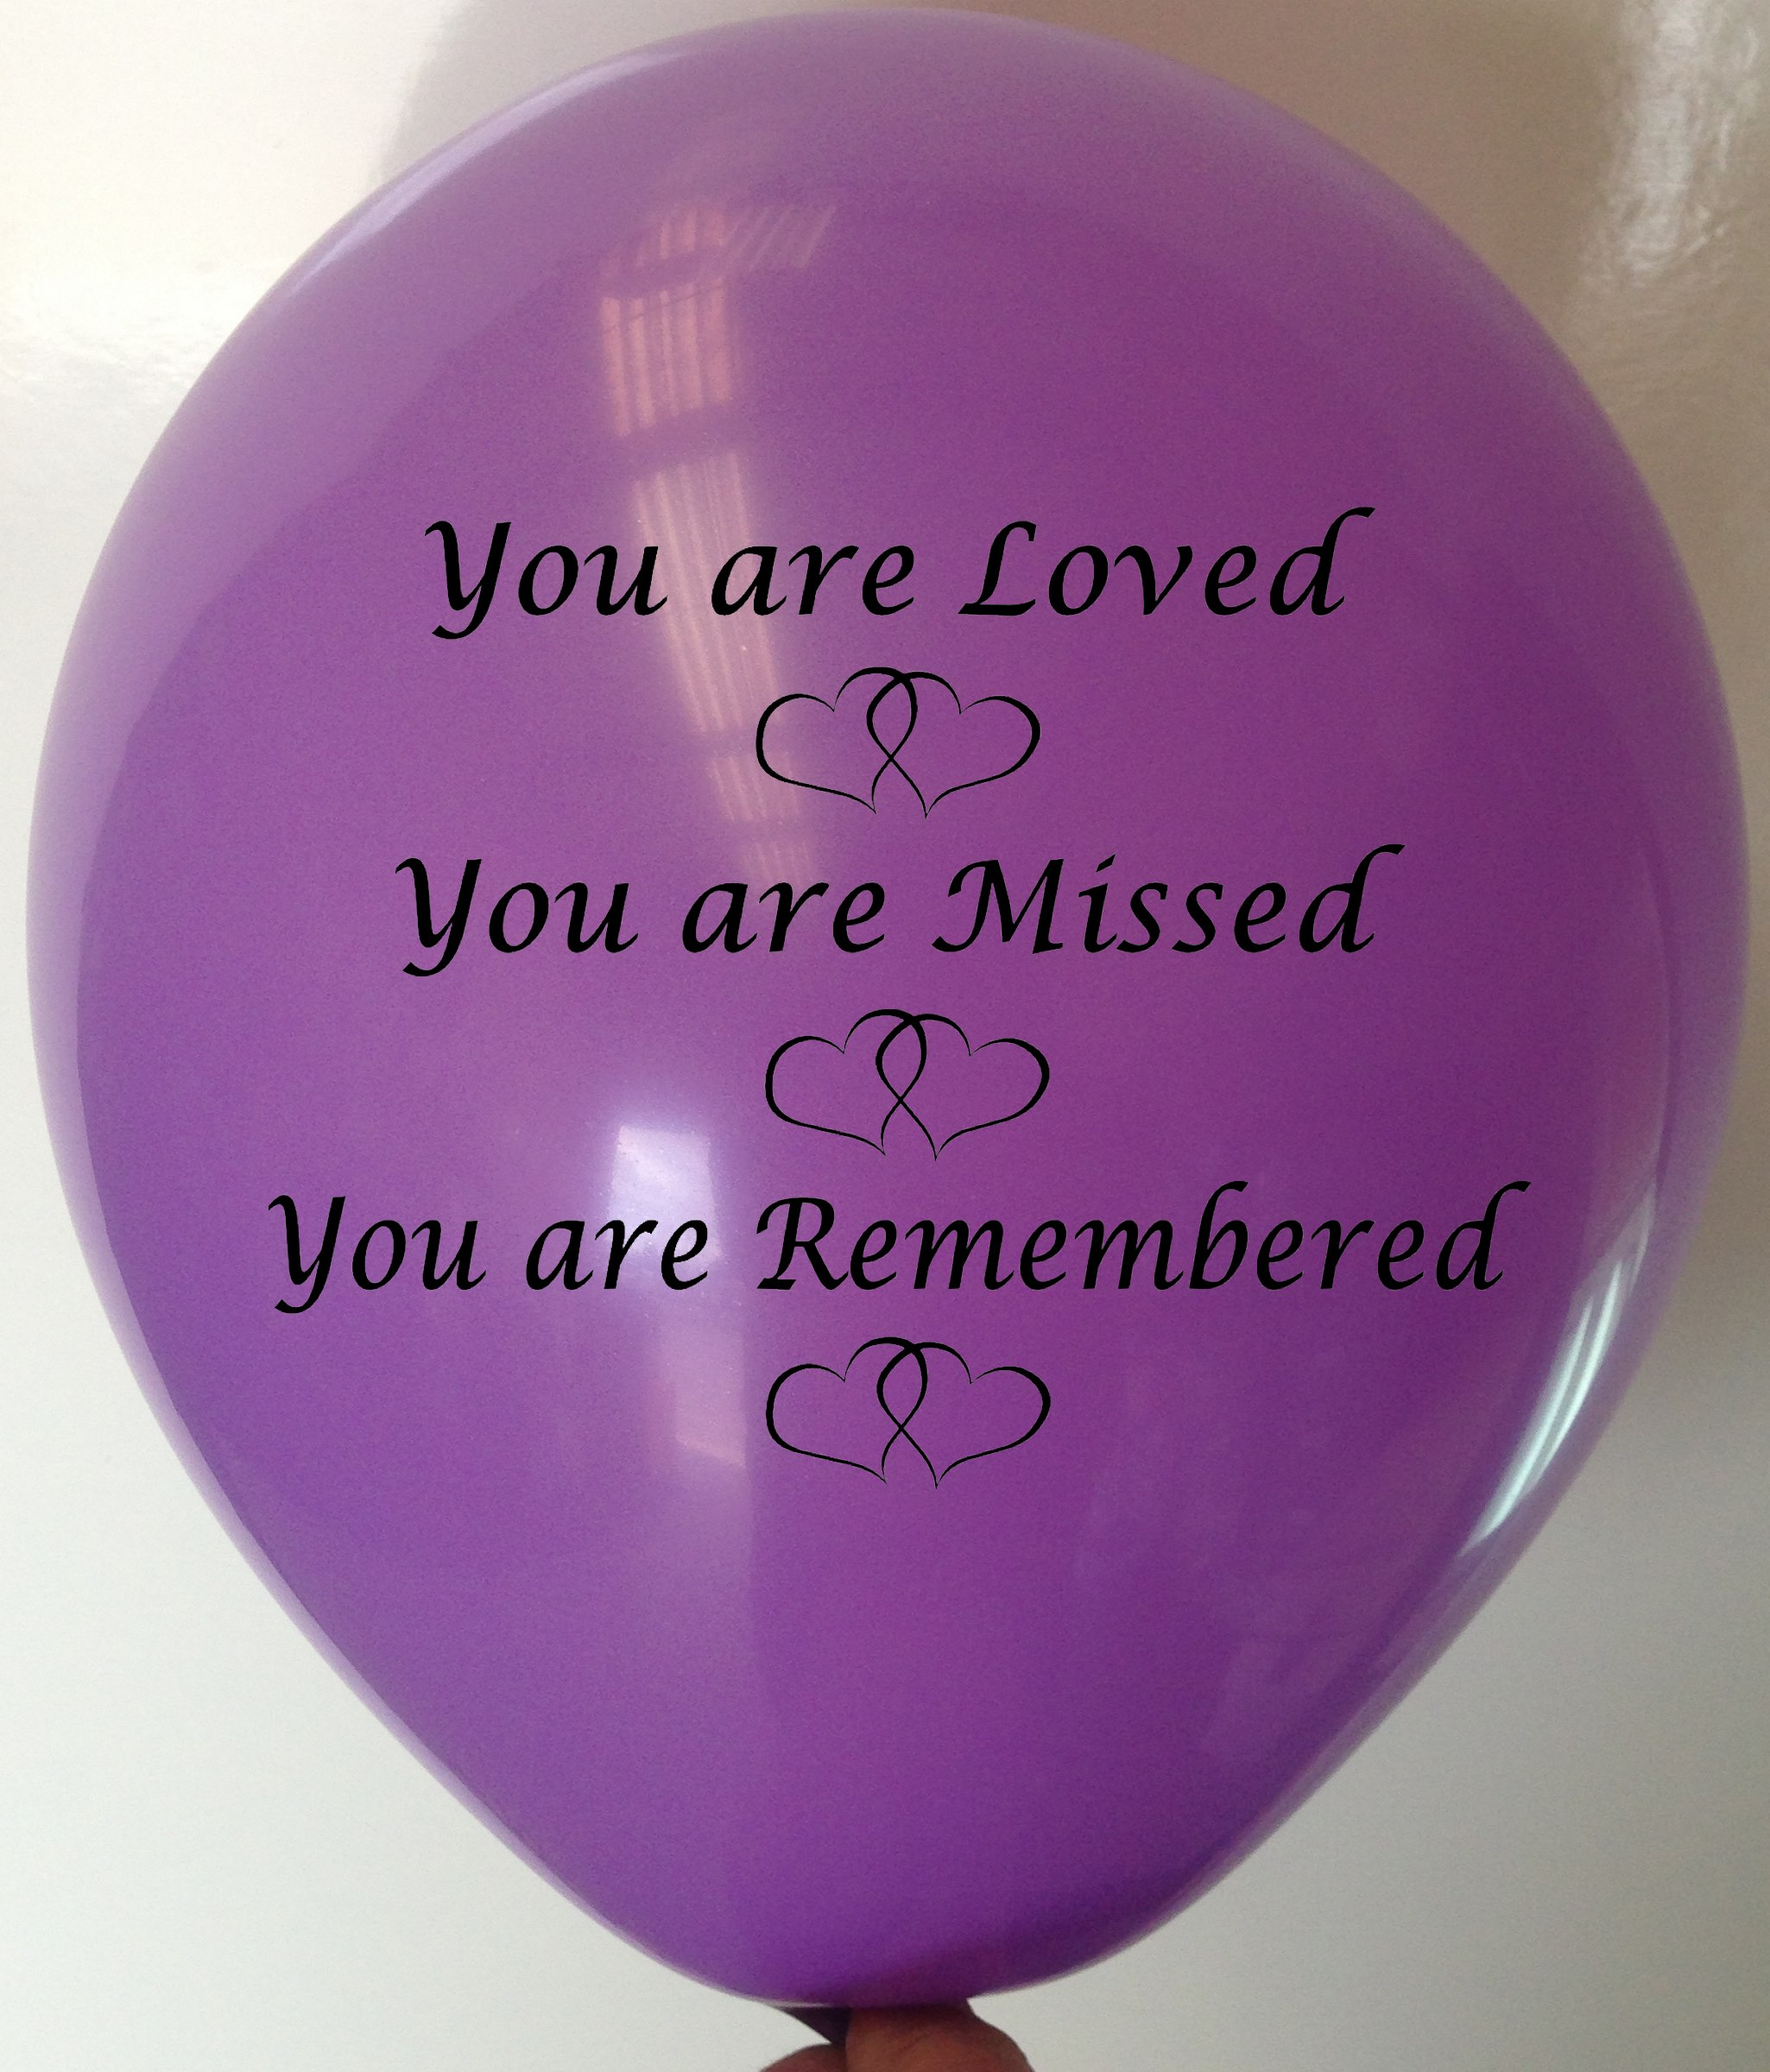 Memorial Balloons Lavender You are loved, you are missed, you are remembered